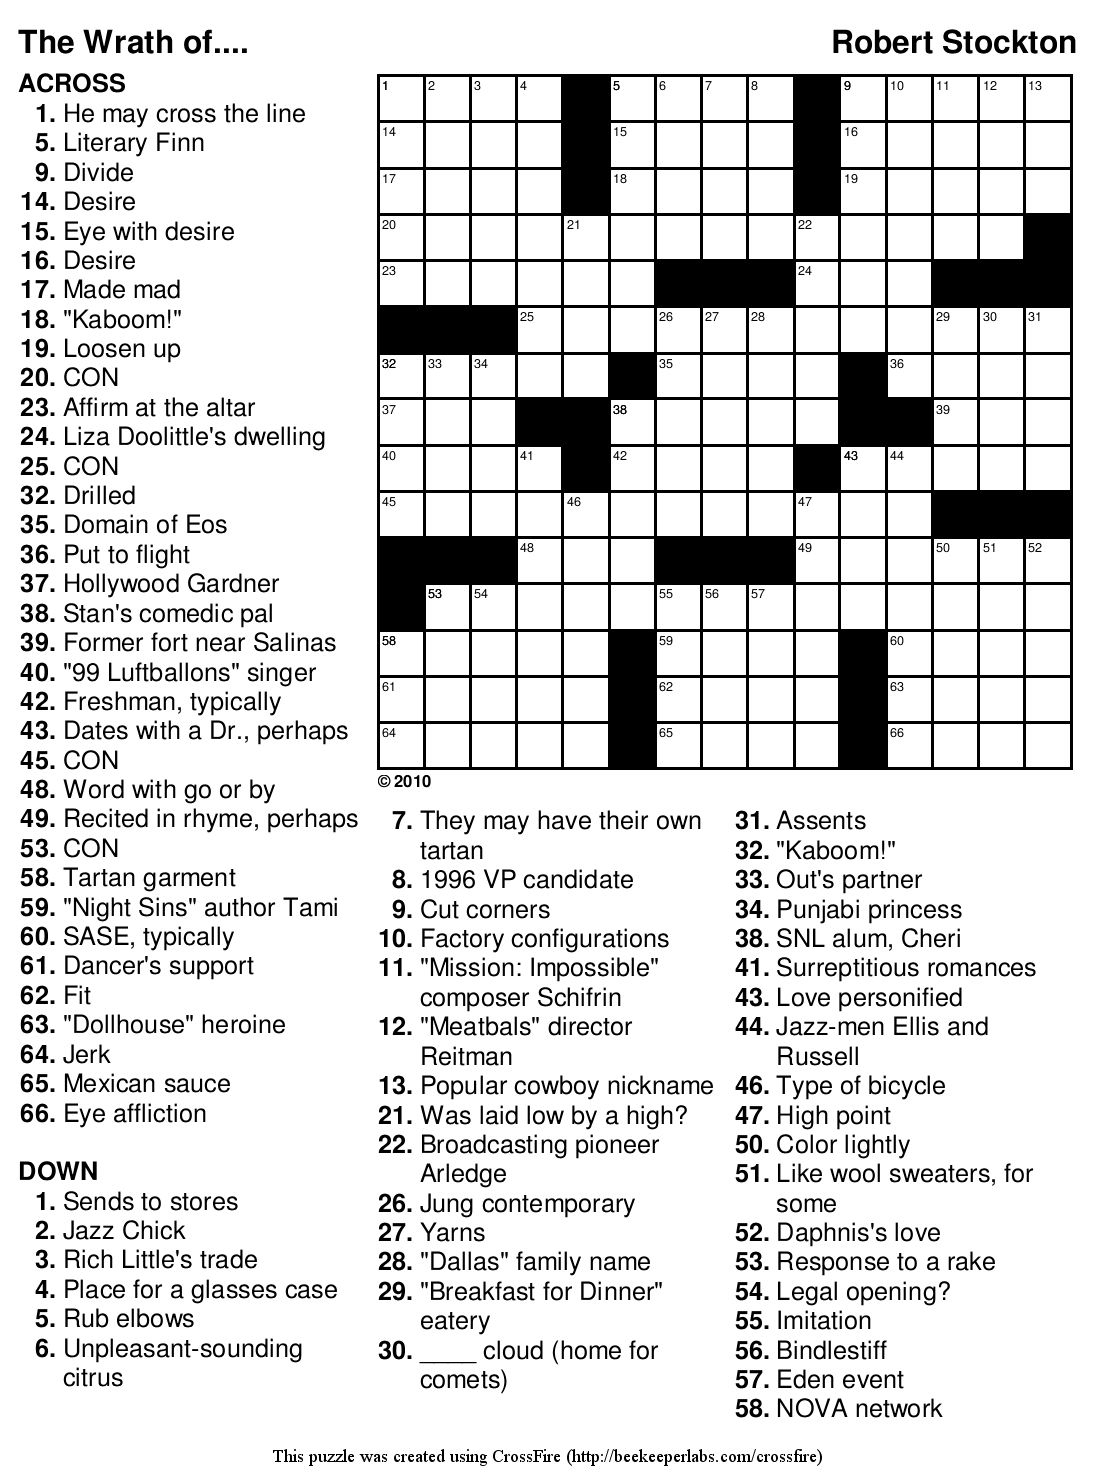 photo regarding Onlinecrosswords Net Printable Daily referred to as Crosswords Printable Crossword Puzzle Producer On the internet Cost-free In direction of